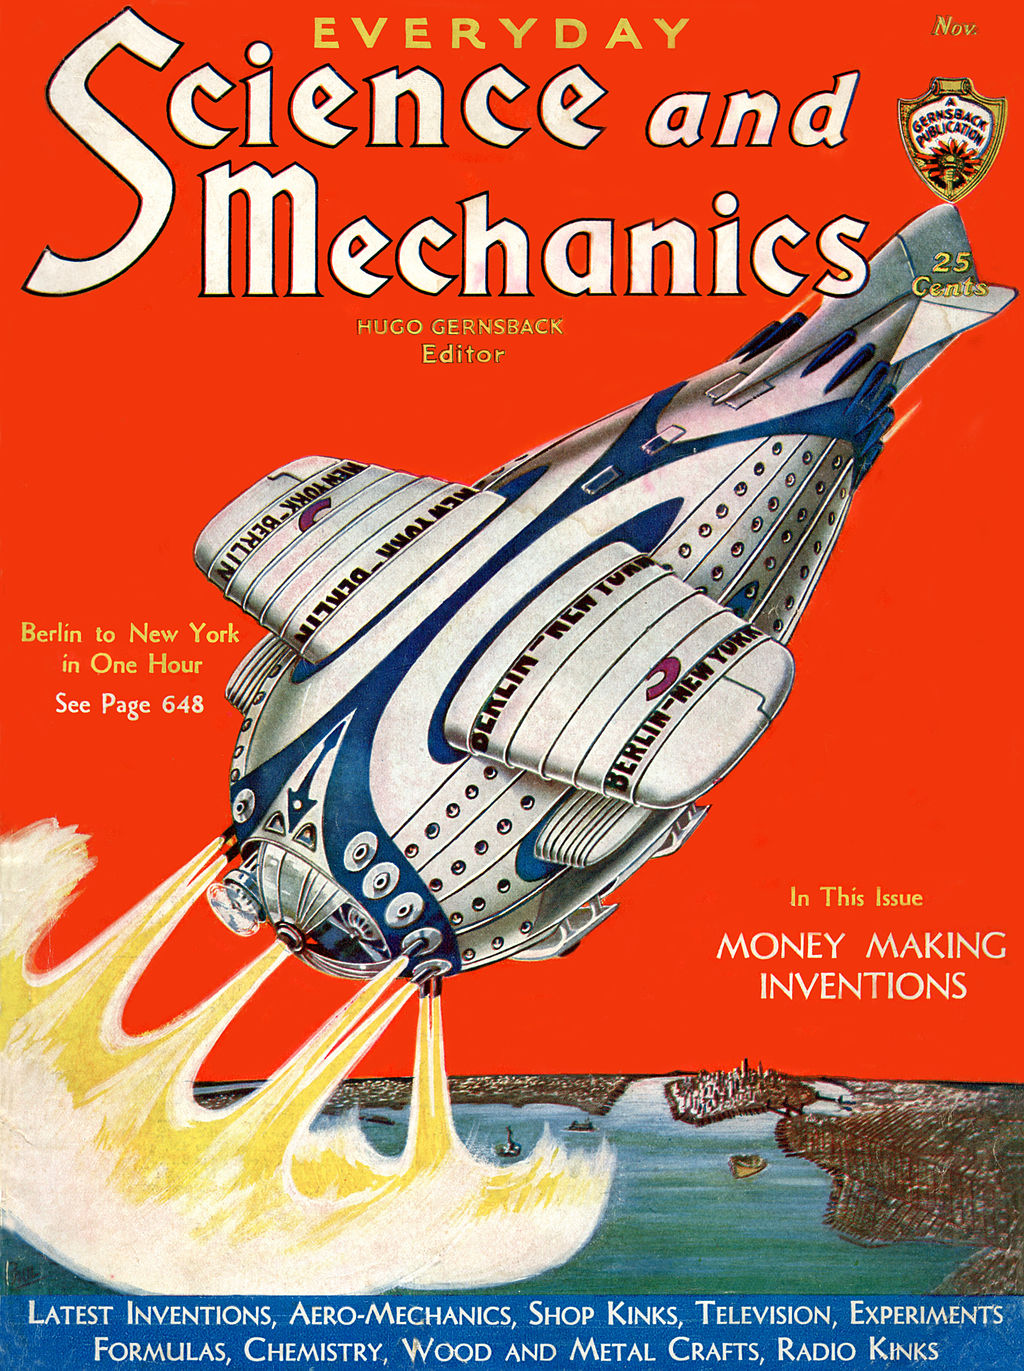 November 1931 issue of Everyday Science and Mechanics